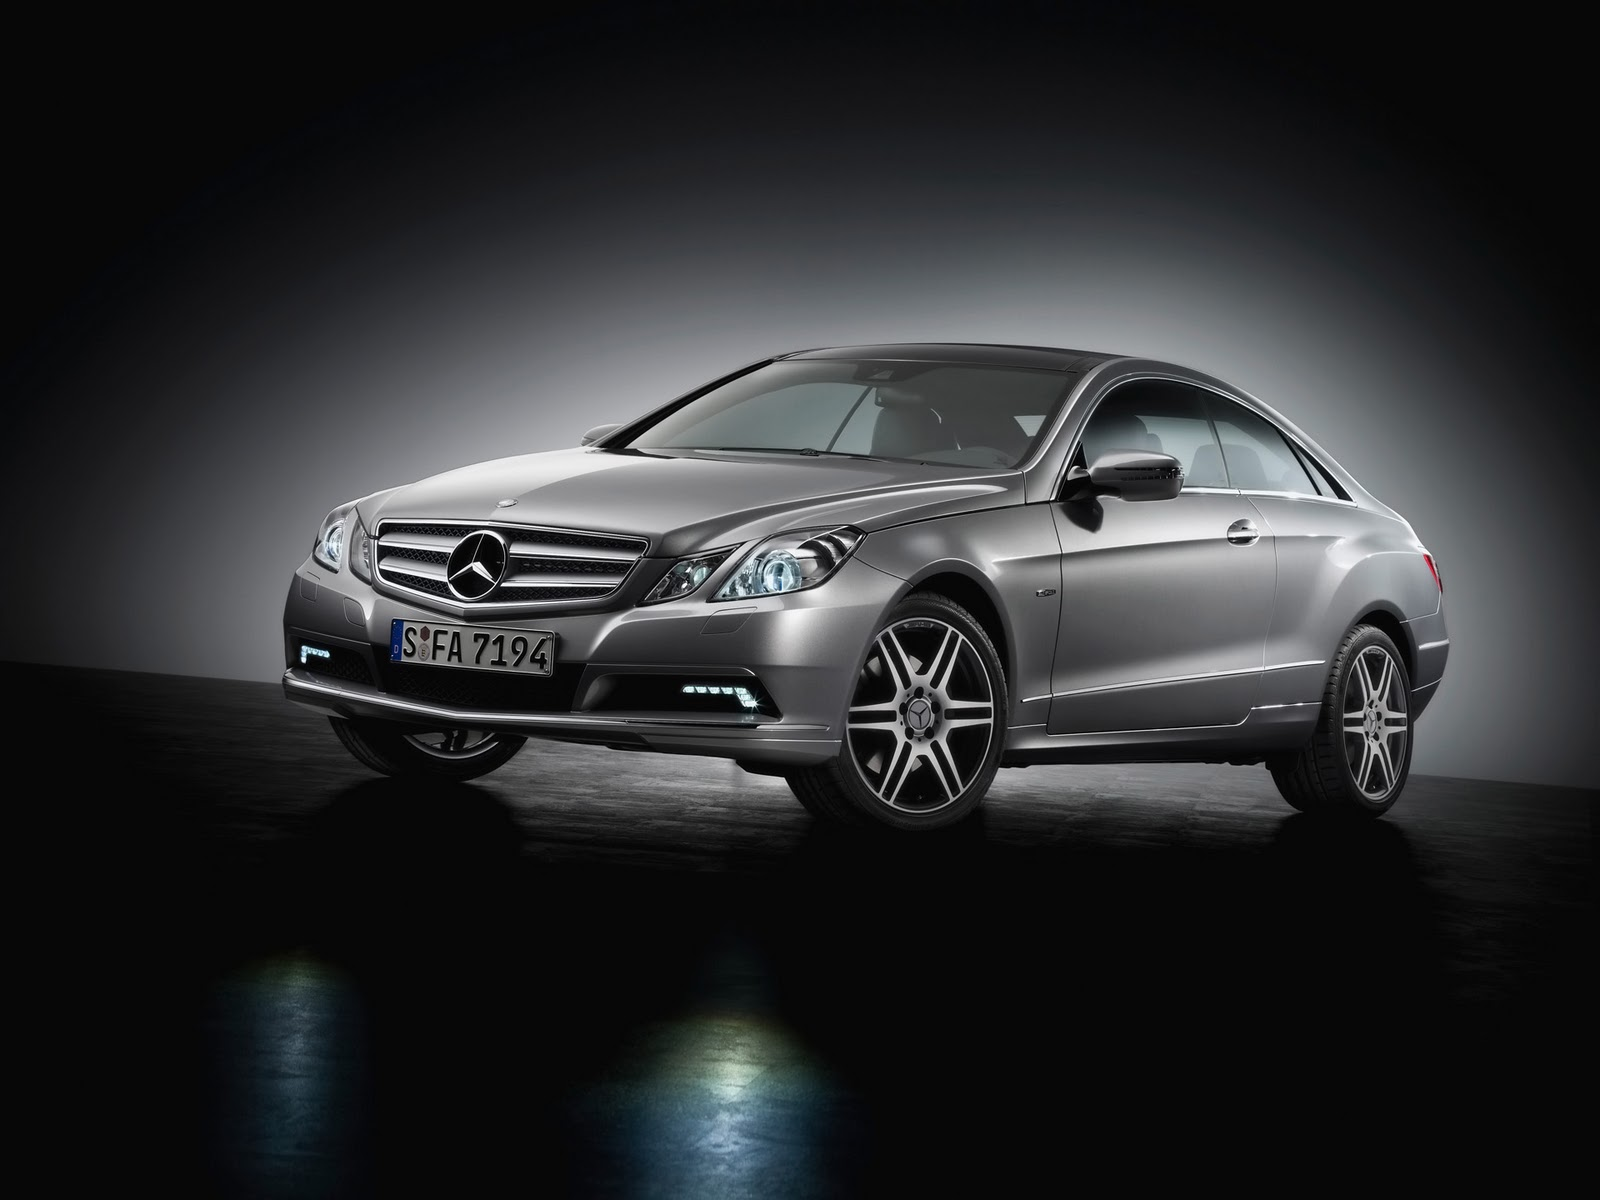 Mercedes benz wallpapers hd nice wallpapers for 2011 mercedes benz e350 coupe